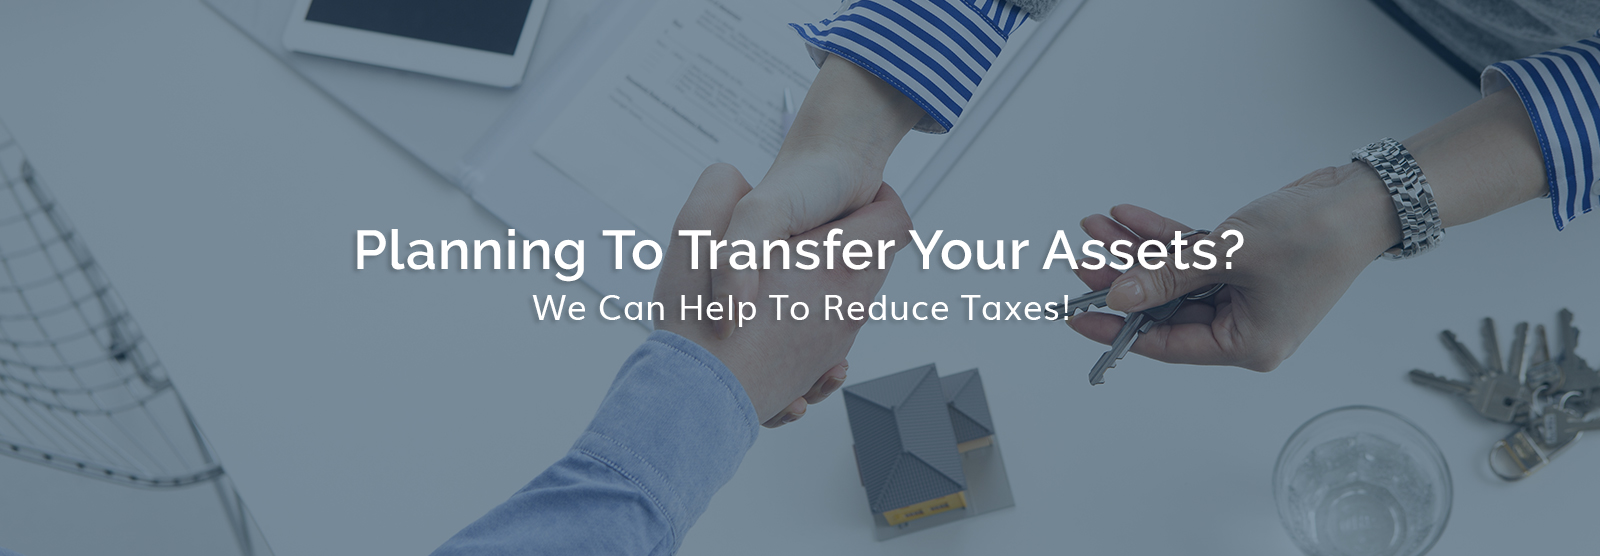 Planning To Transfer Your Assets We Can Help To Reduce Taxes